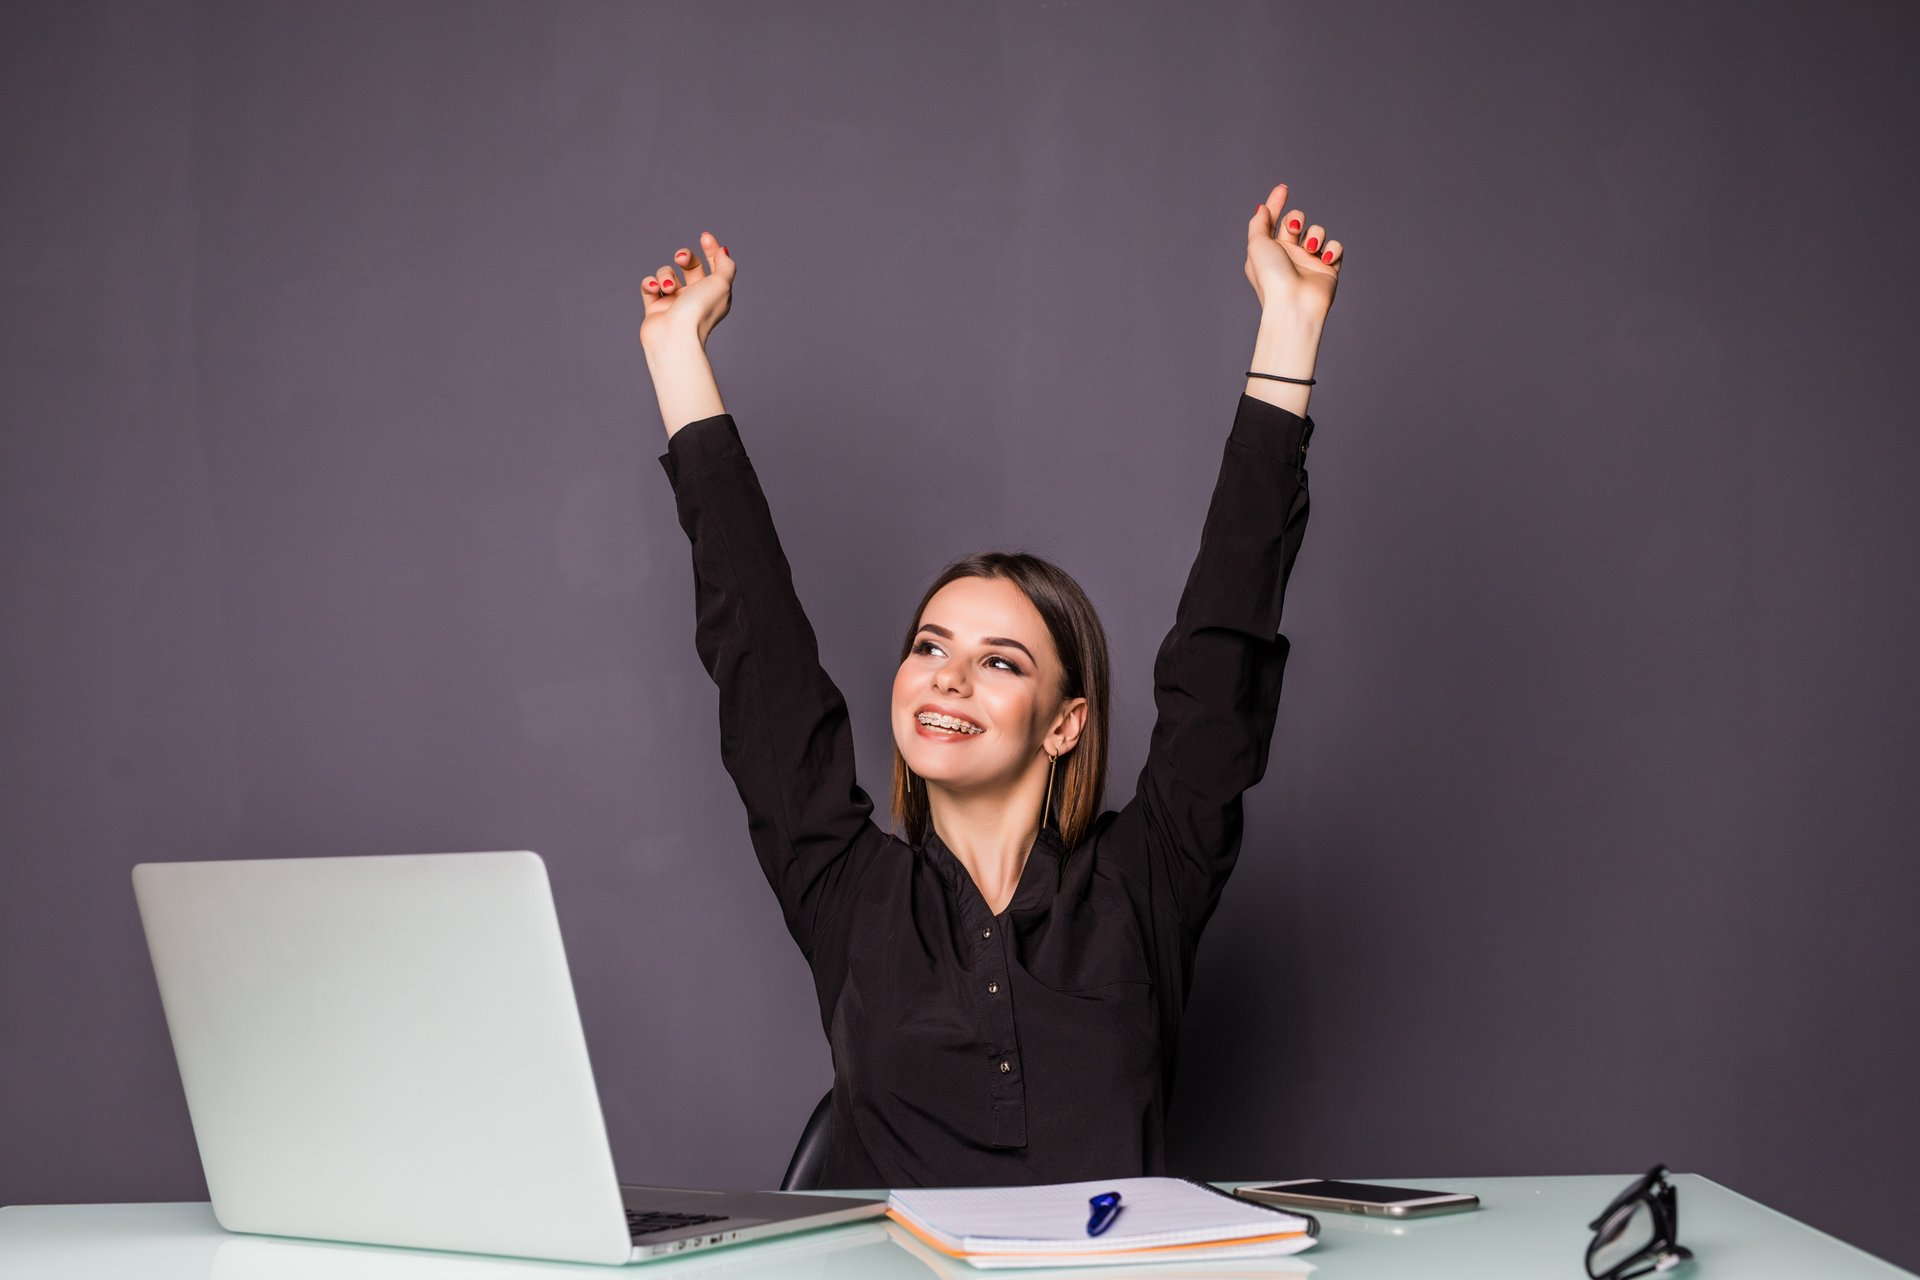 Woman happily working from home